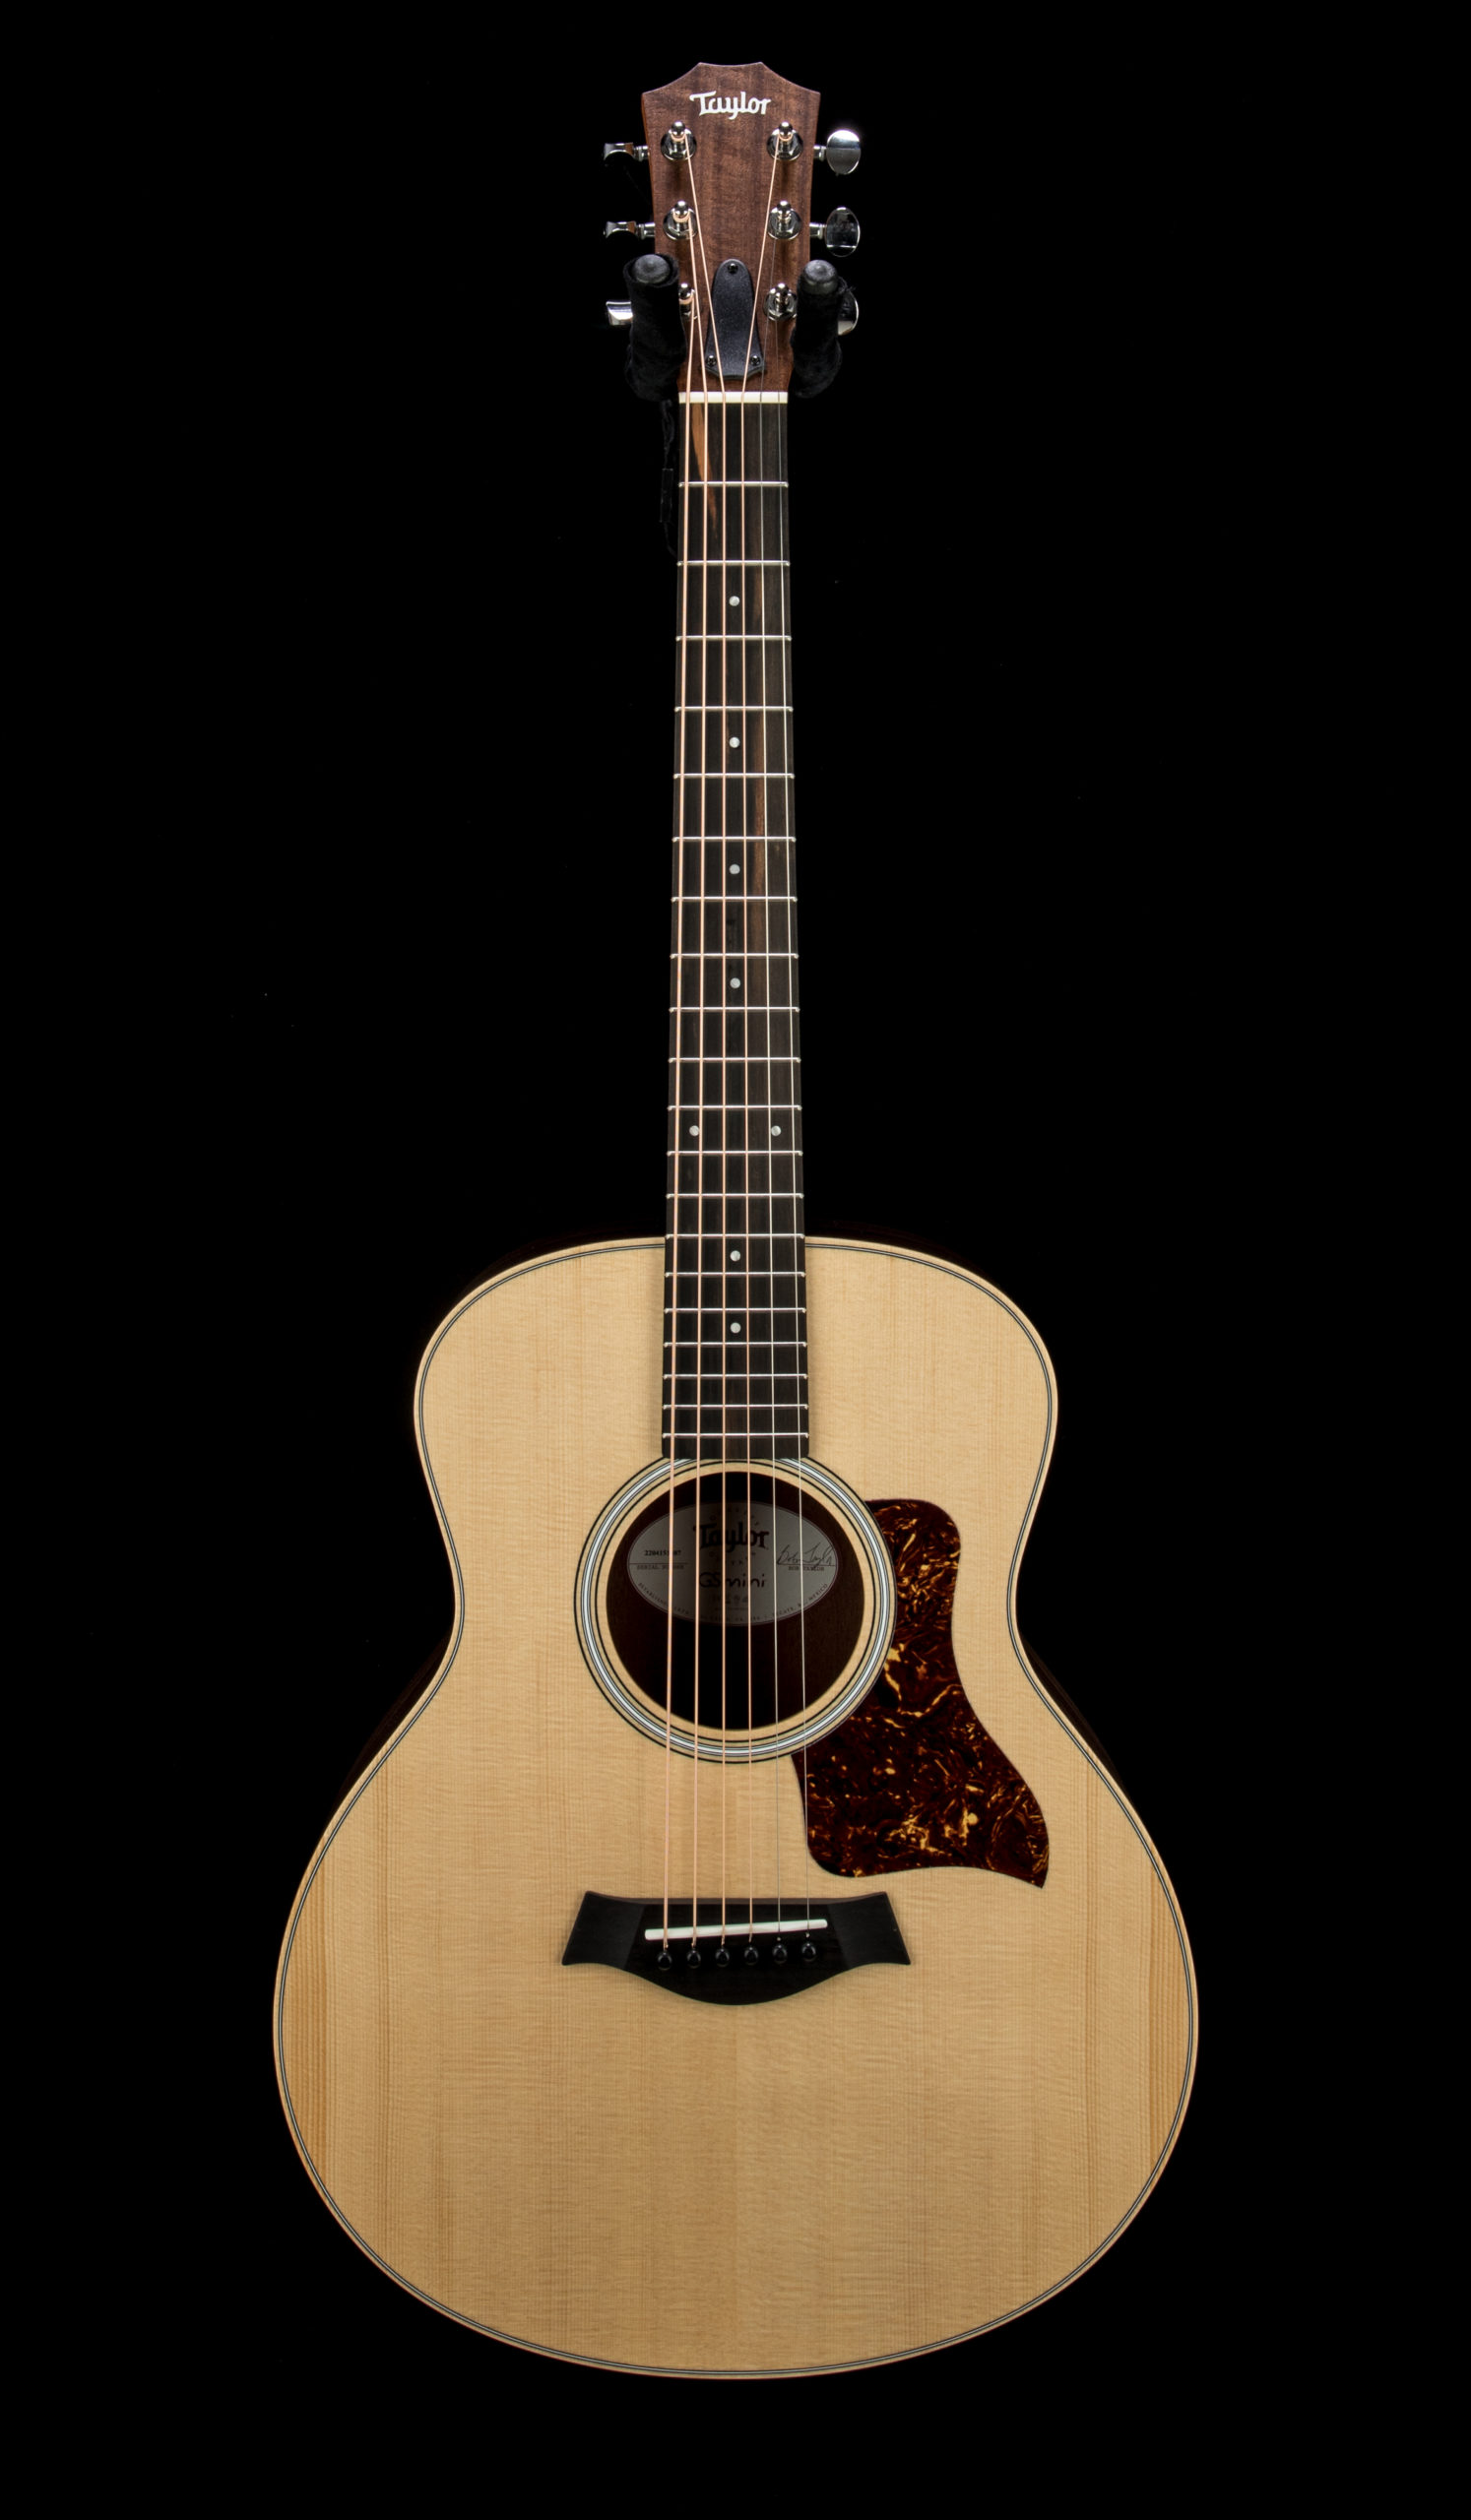 Taylor GS Mini Rosewood #2204151407 Front